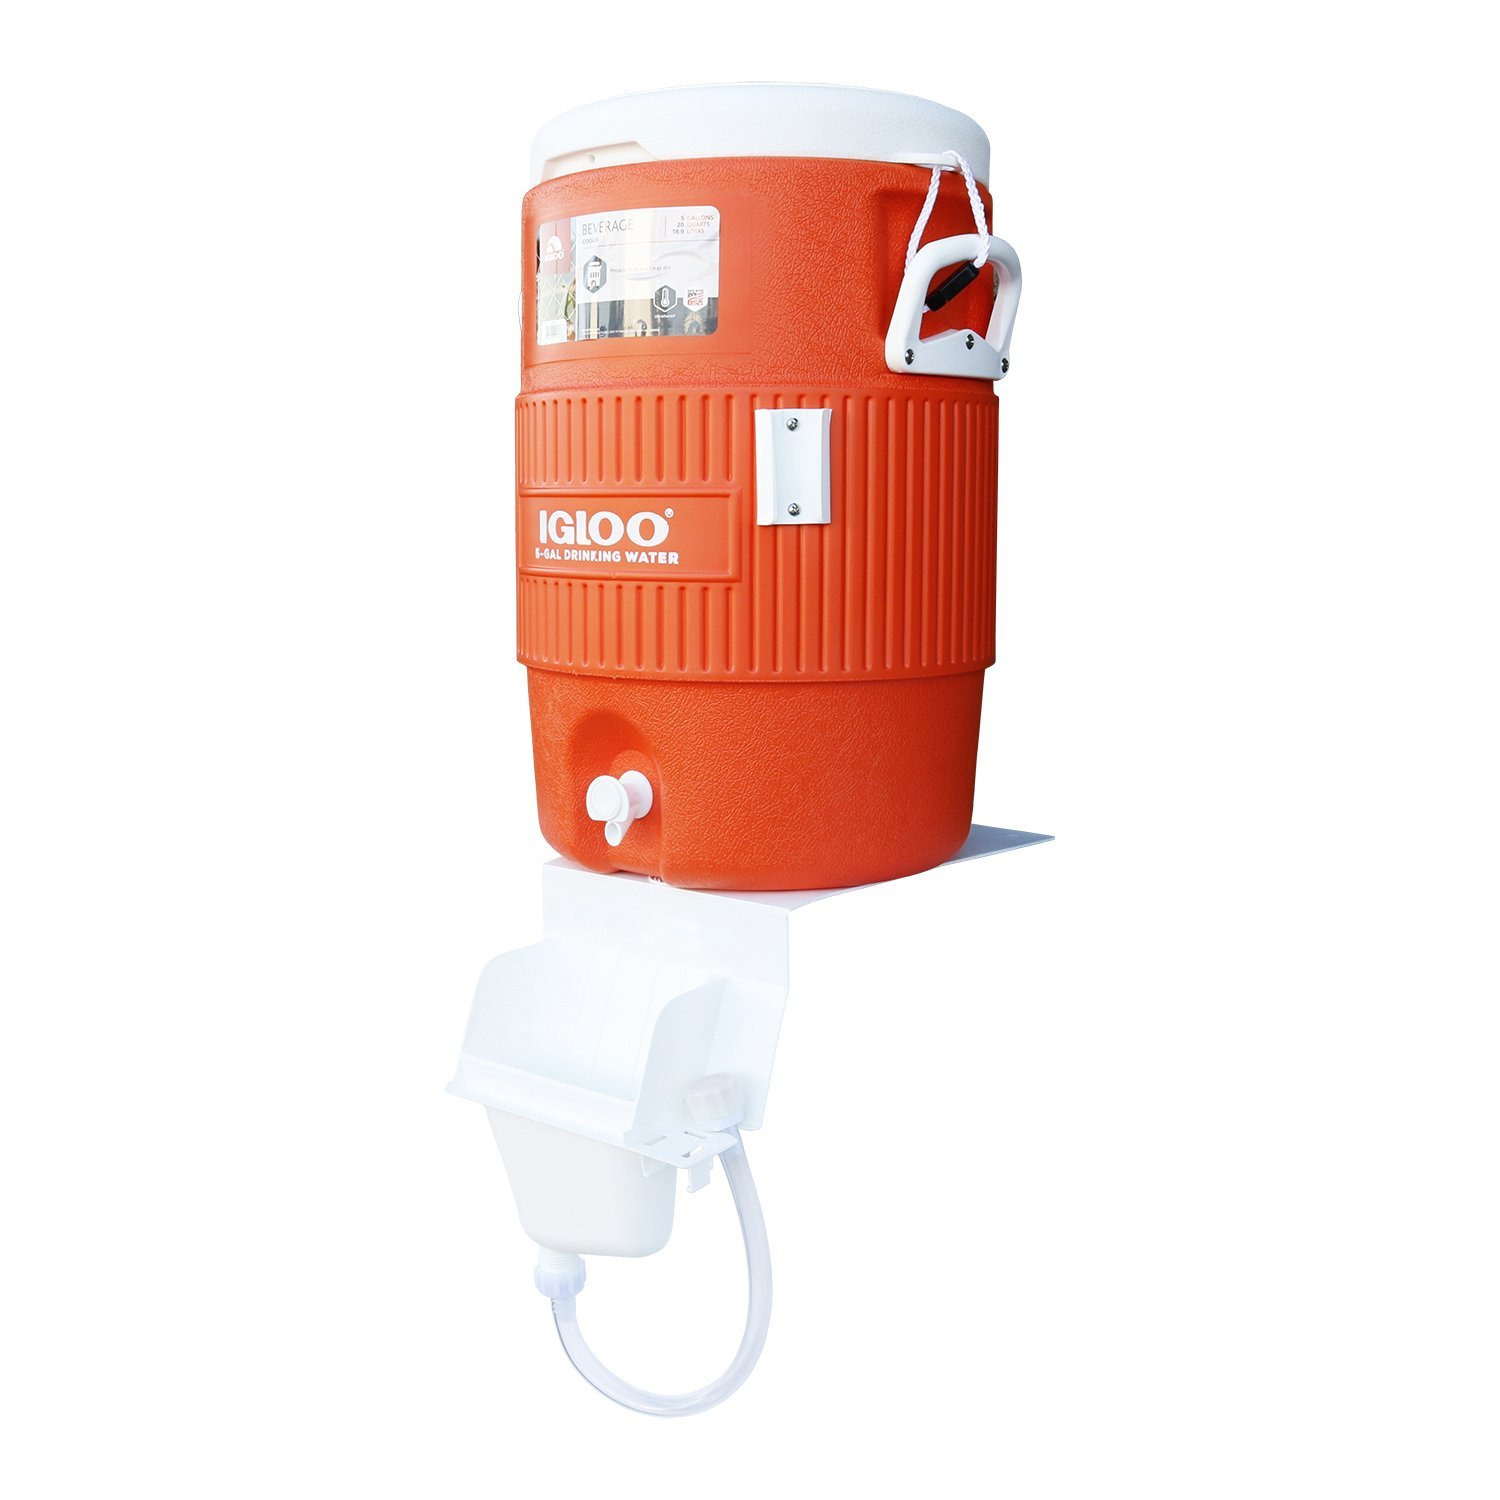 Igloo 5-Gallon Heavy-Duty Beverage Cooler, Orange & Ultimate Drip Catcher Set - White - Catch All Your Drips, Seeps, Leaks Accidental Pours!